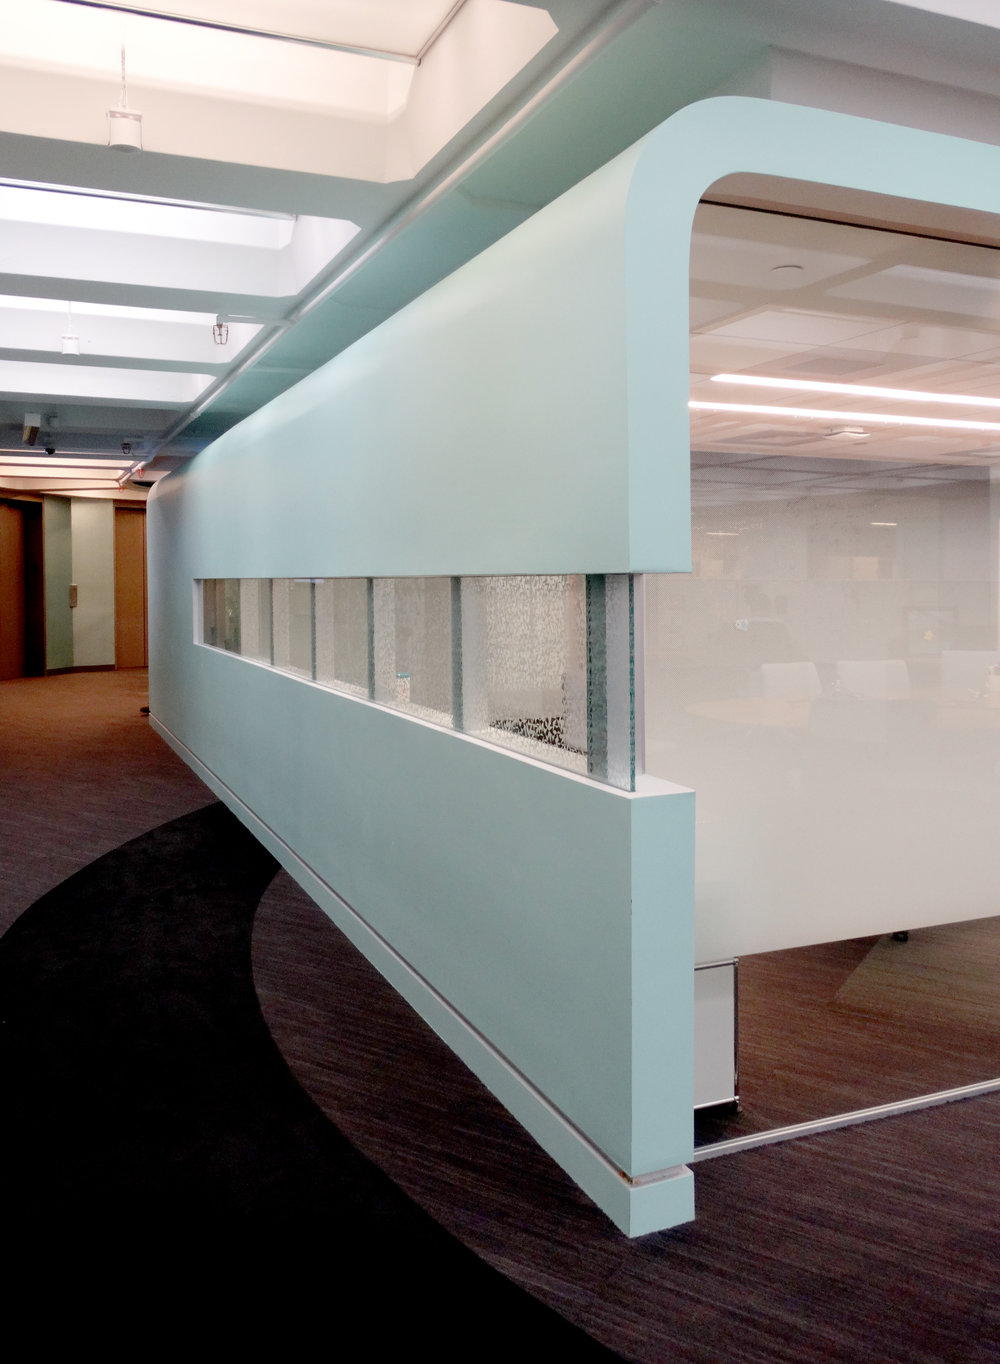 Illume Cool Specialty Glass Wall - Spaceworks AI.jpg